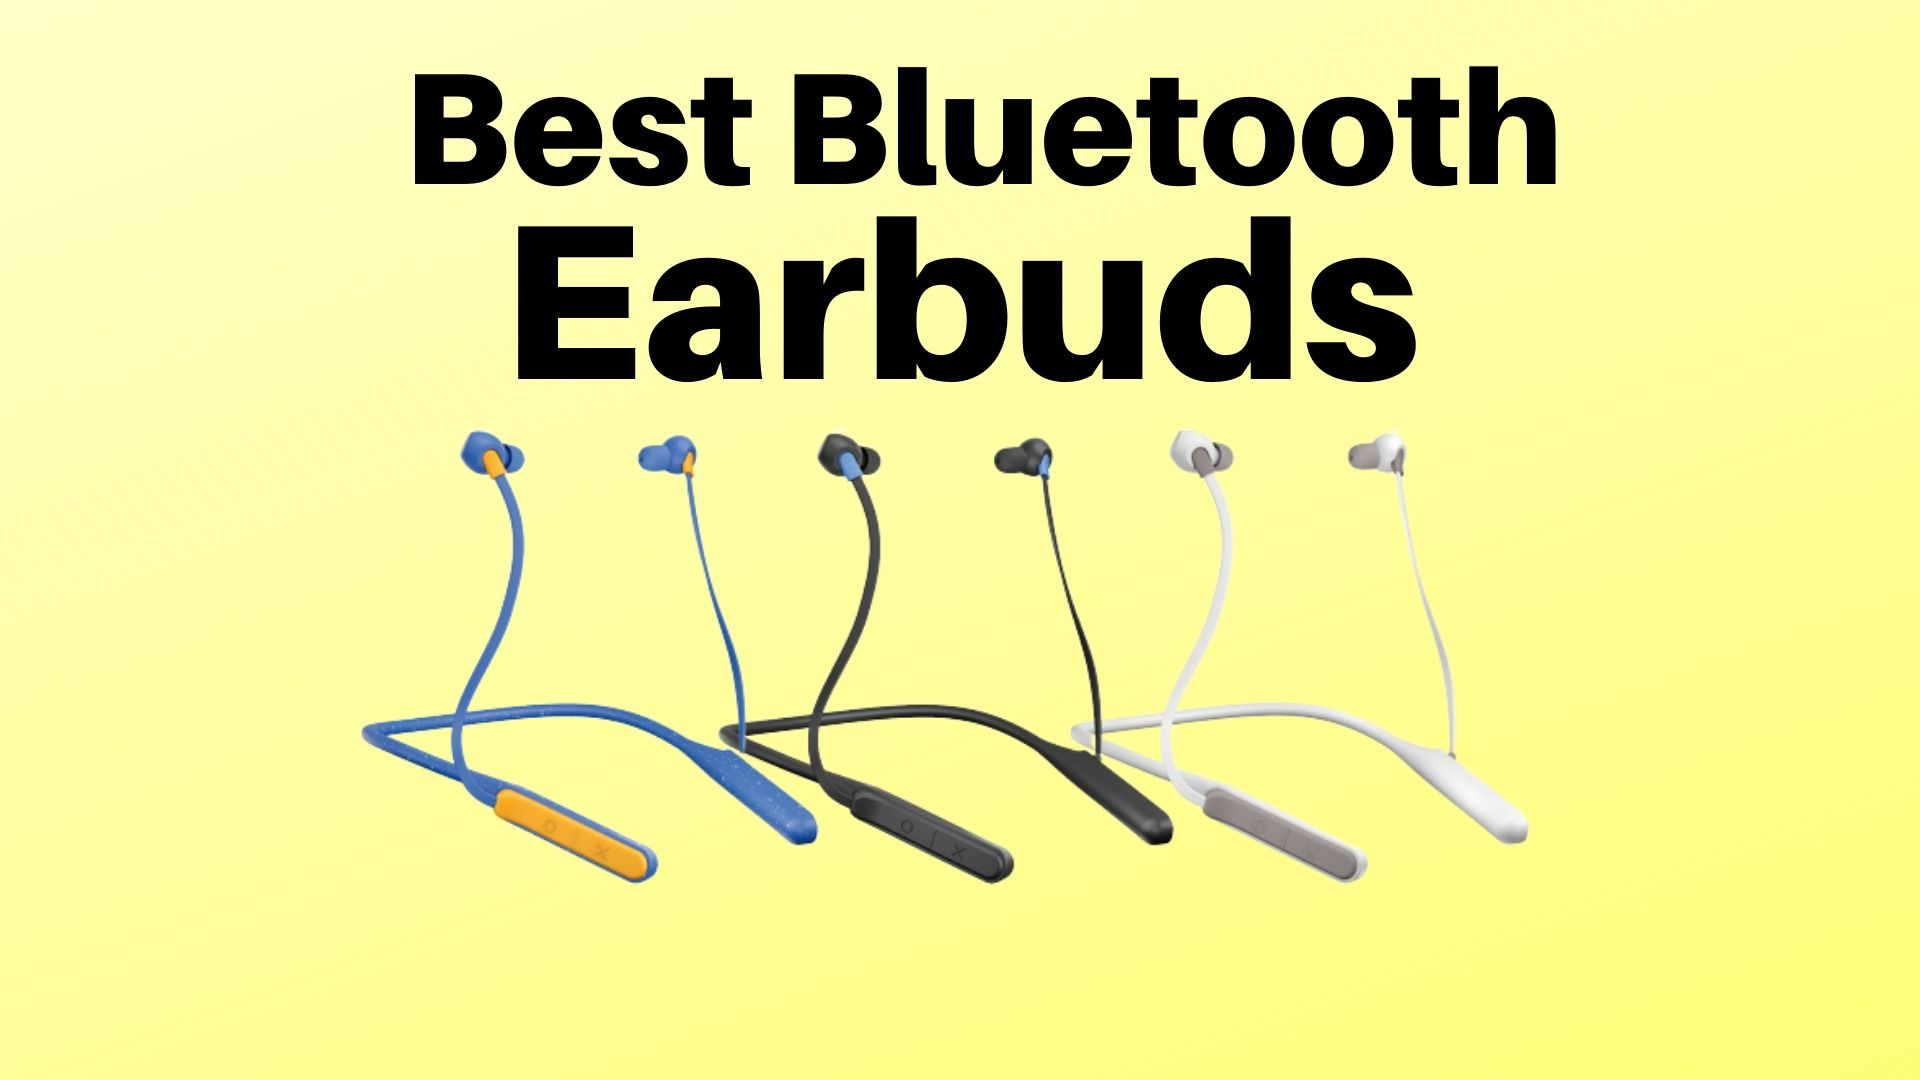 Best Bluetooth Earbuds 2021 20+ Best Wireless Earbuds in 2021 (Top Rated Earbuds)